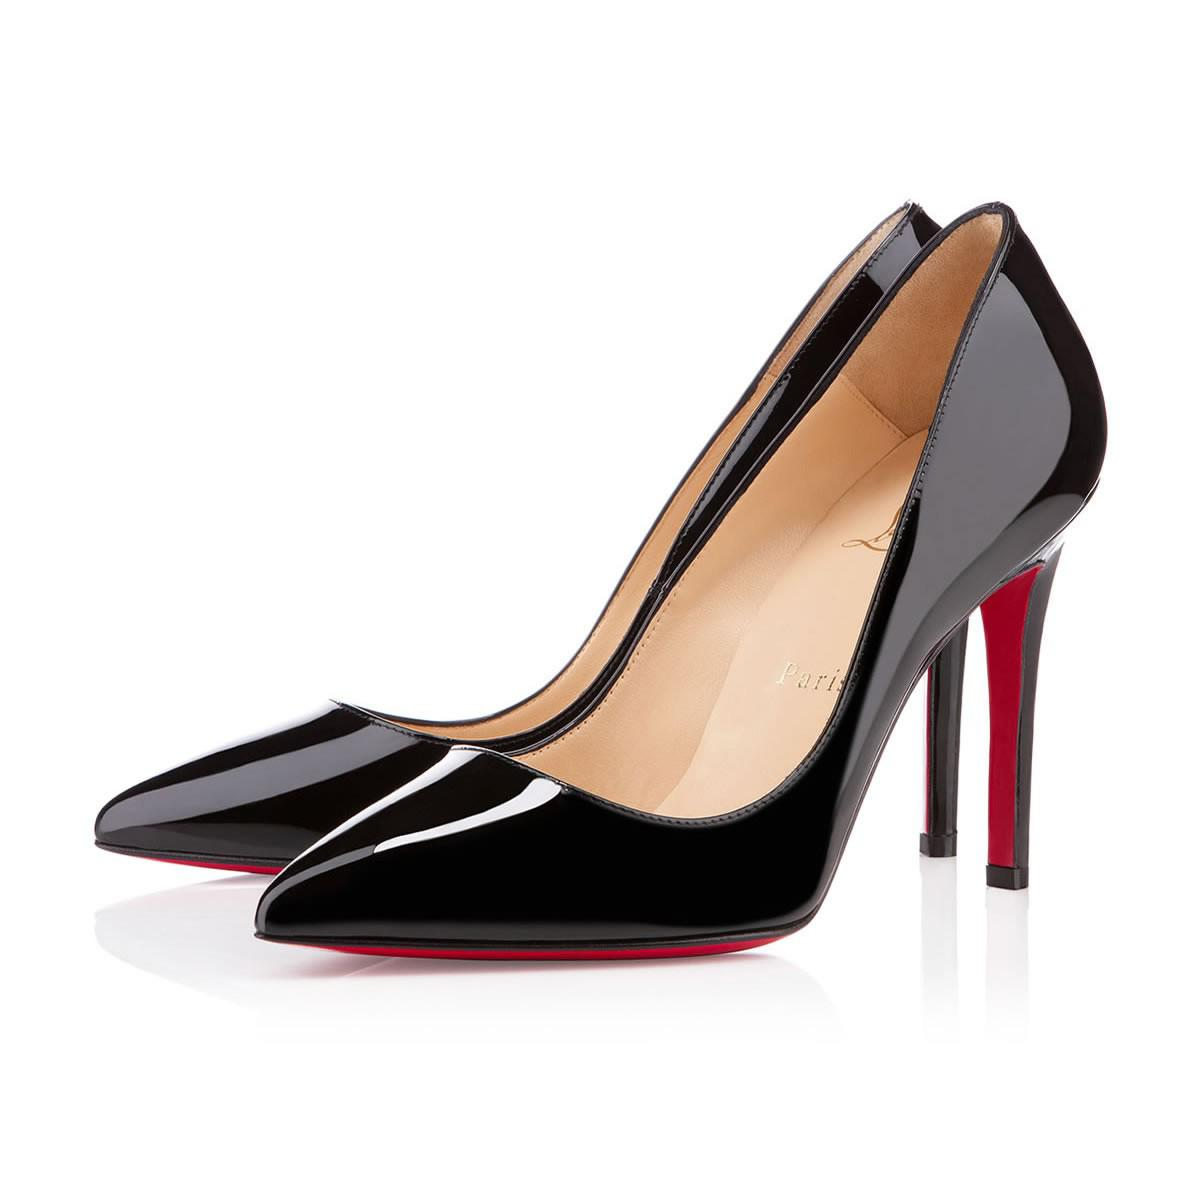 d926f6f278ea Christian Louboutin Pigalle Patent in Black - Lyst